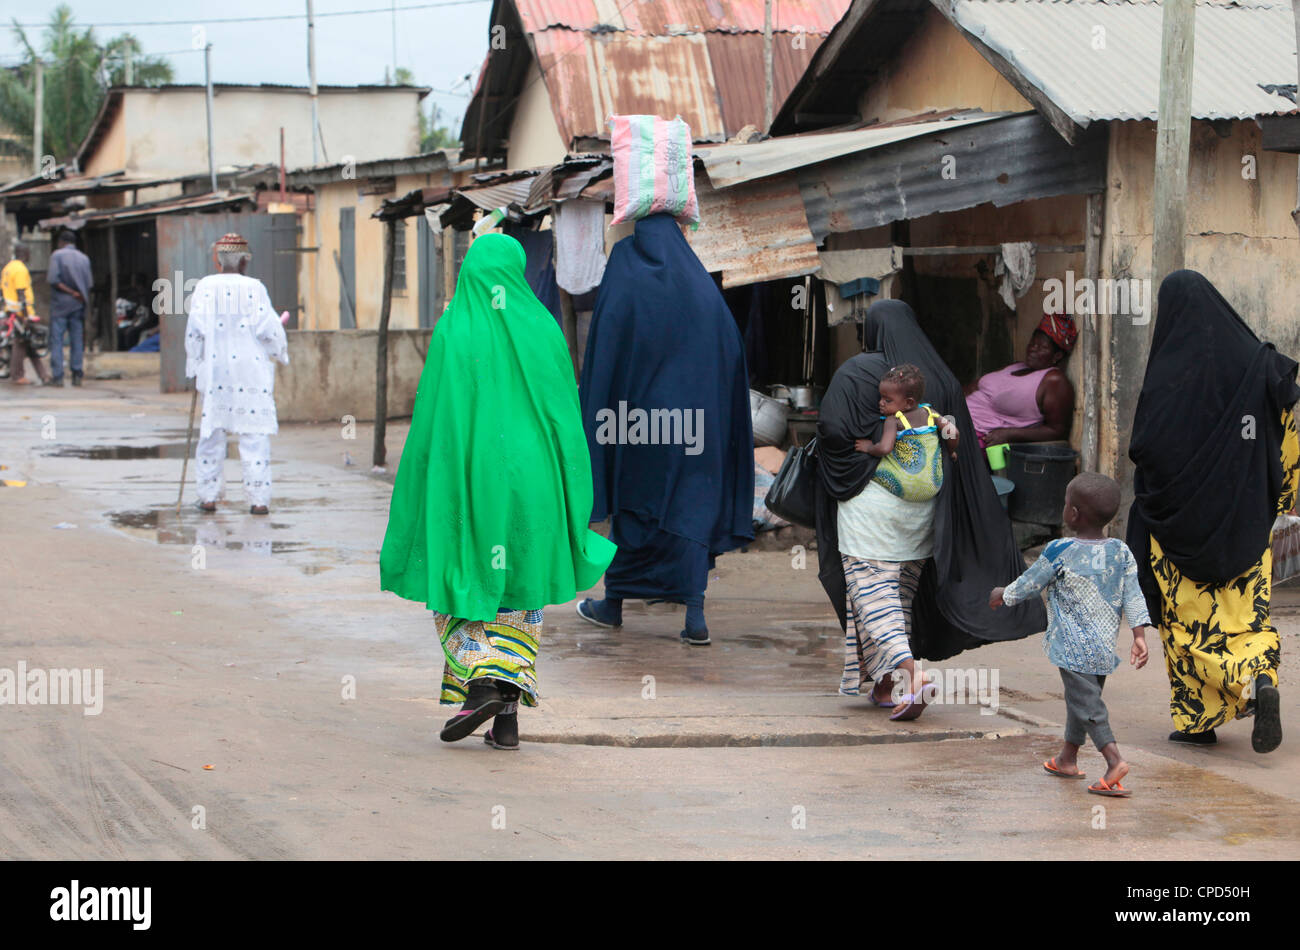 Muslim women in the street, Lome, Togo, West Africa, Africa - Stock Image